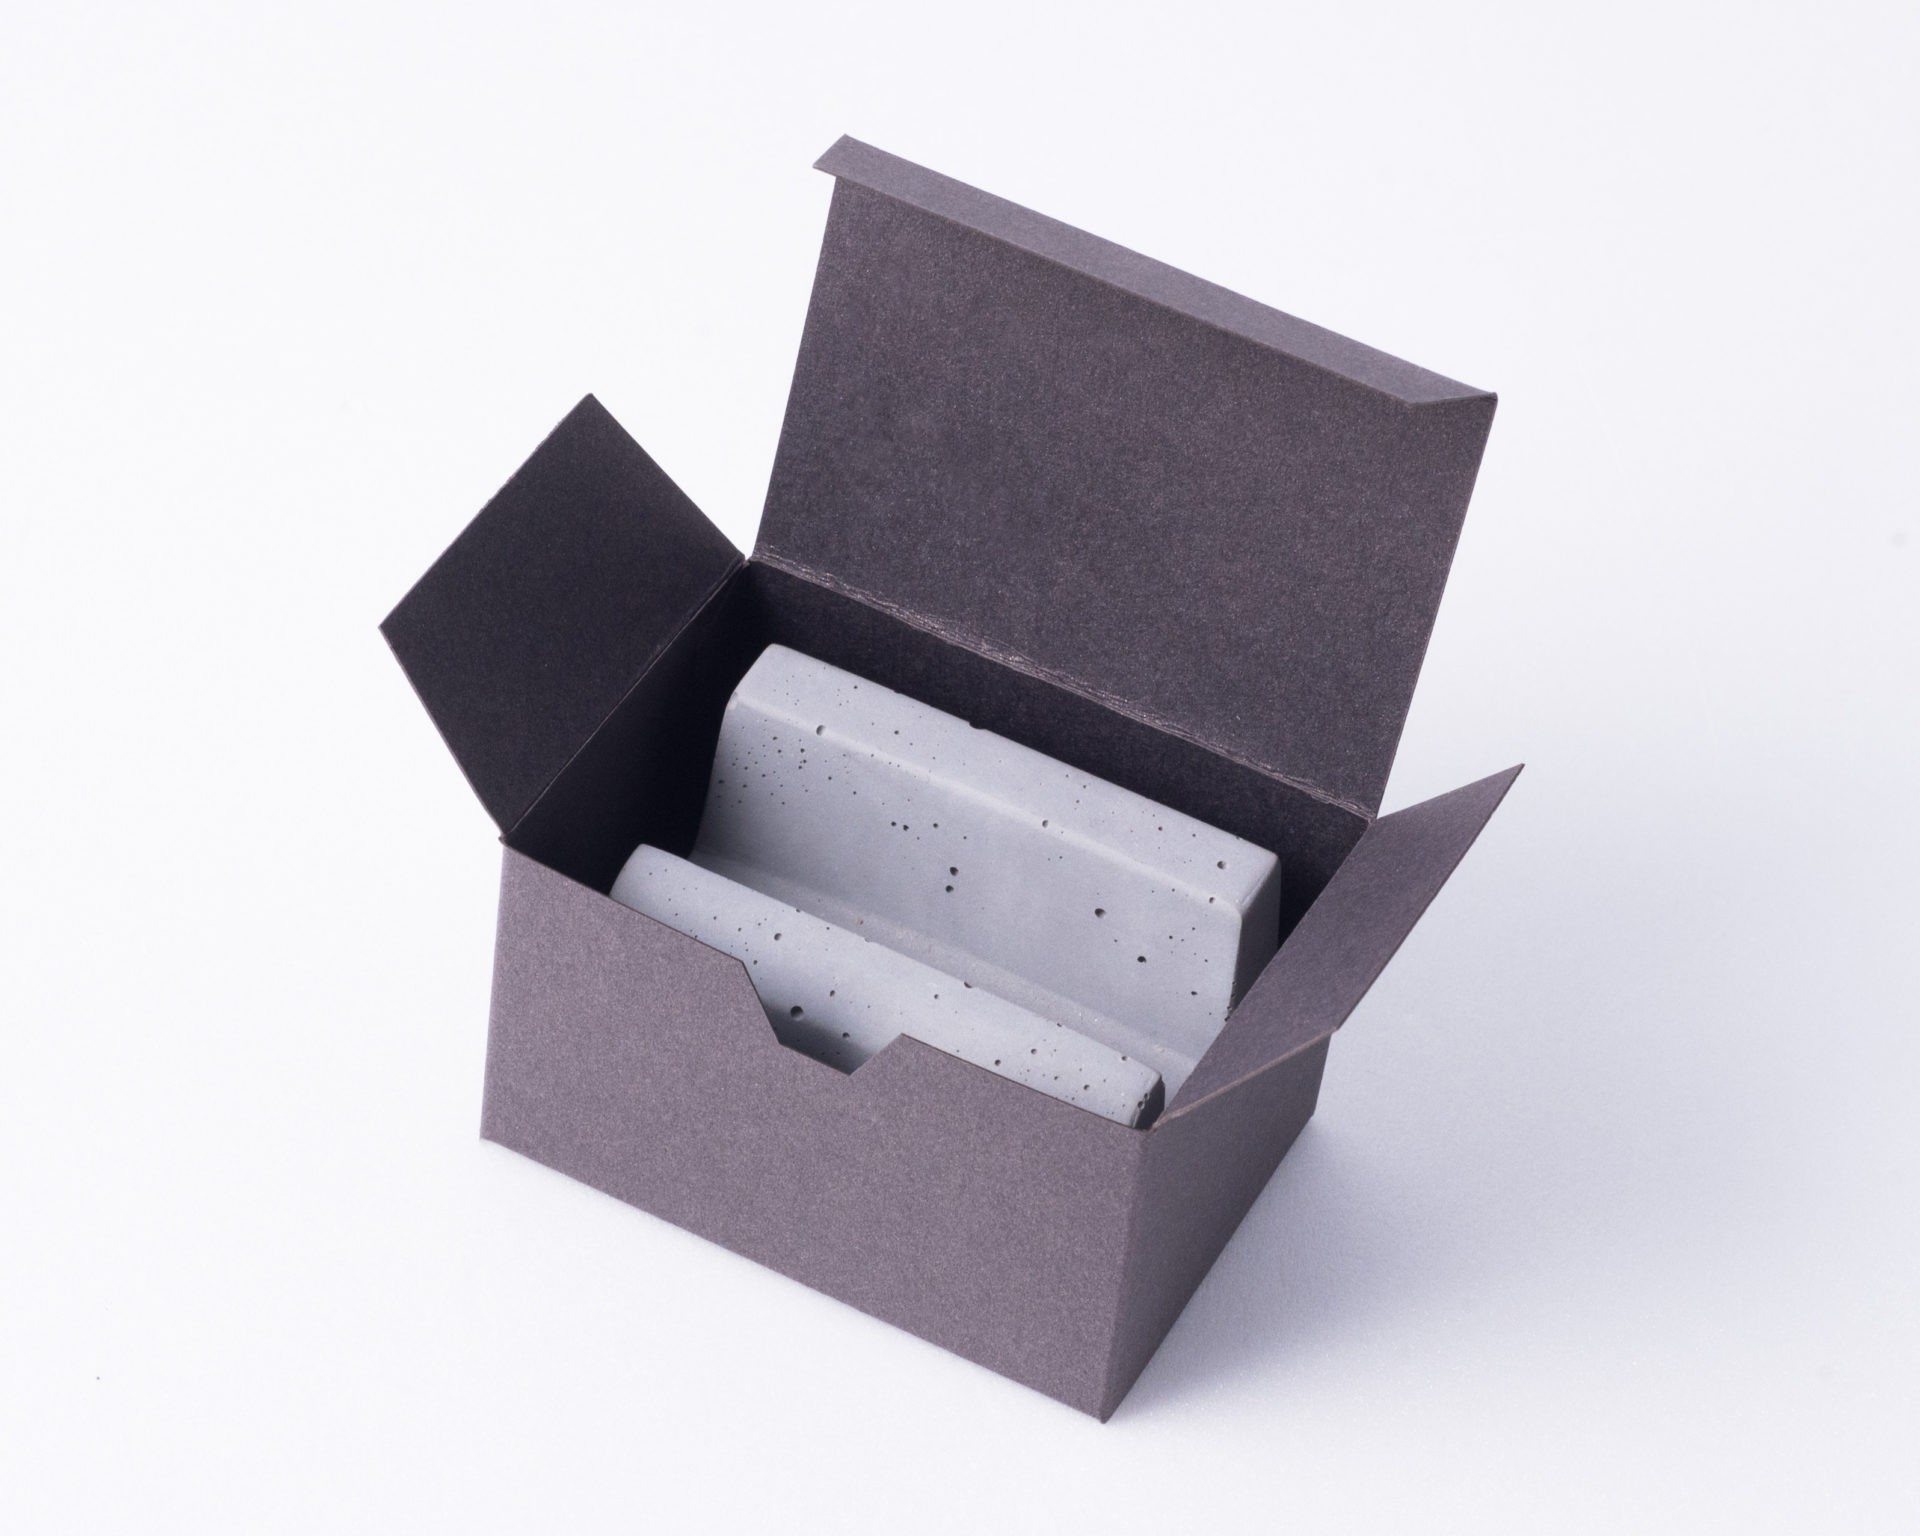 Business card holder as gift for clients in environment friendly box